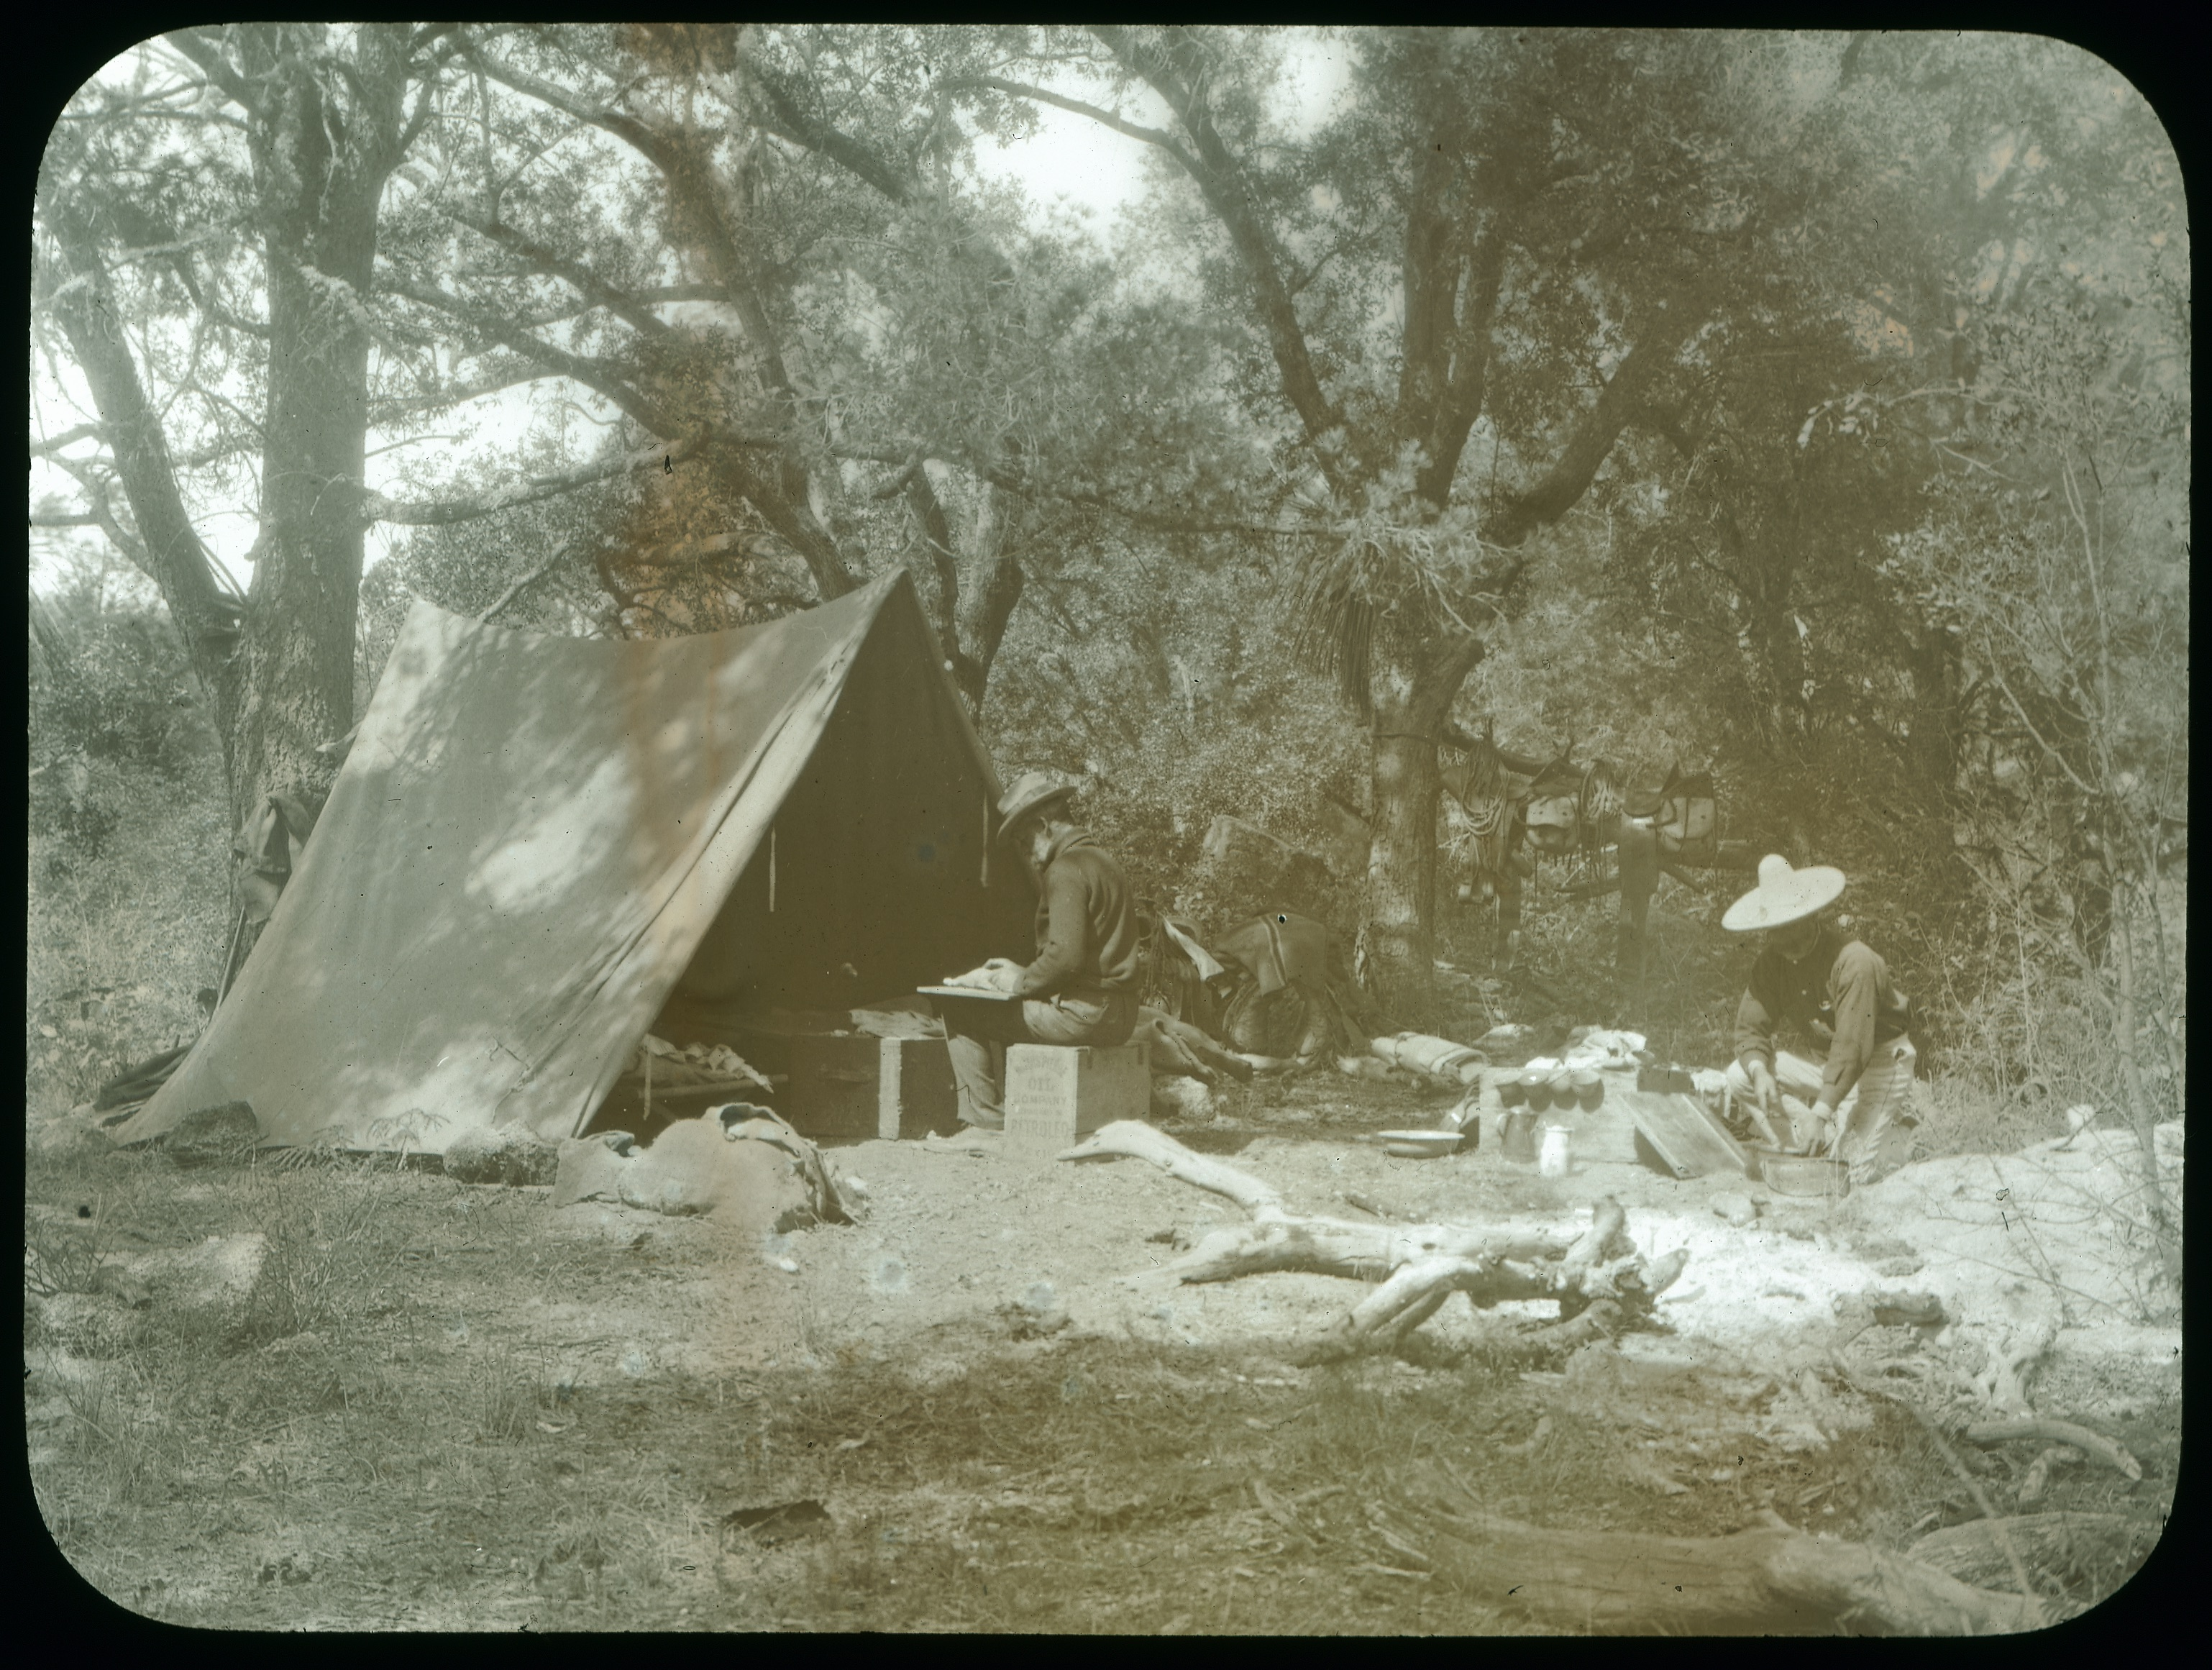 Two men work at a campsite. Their faces are not visible.